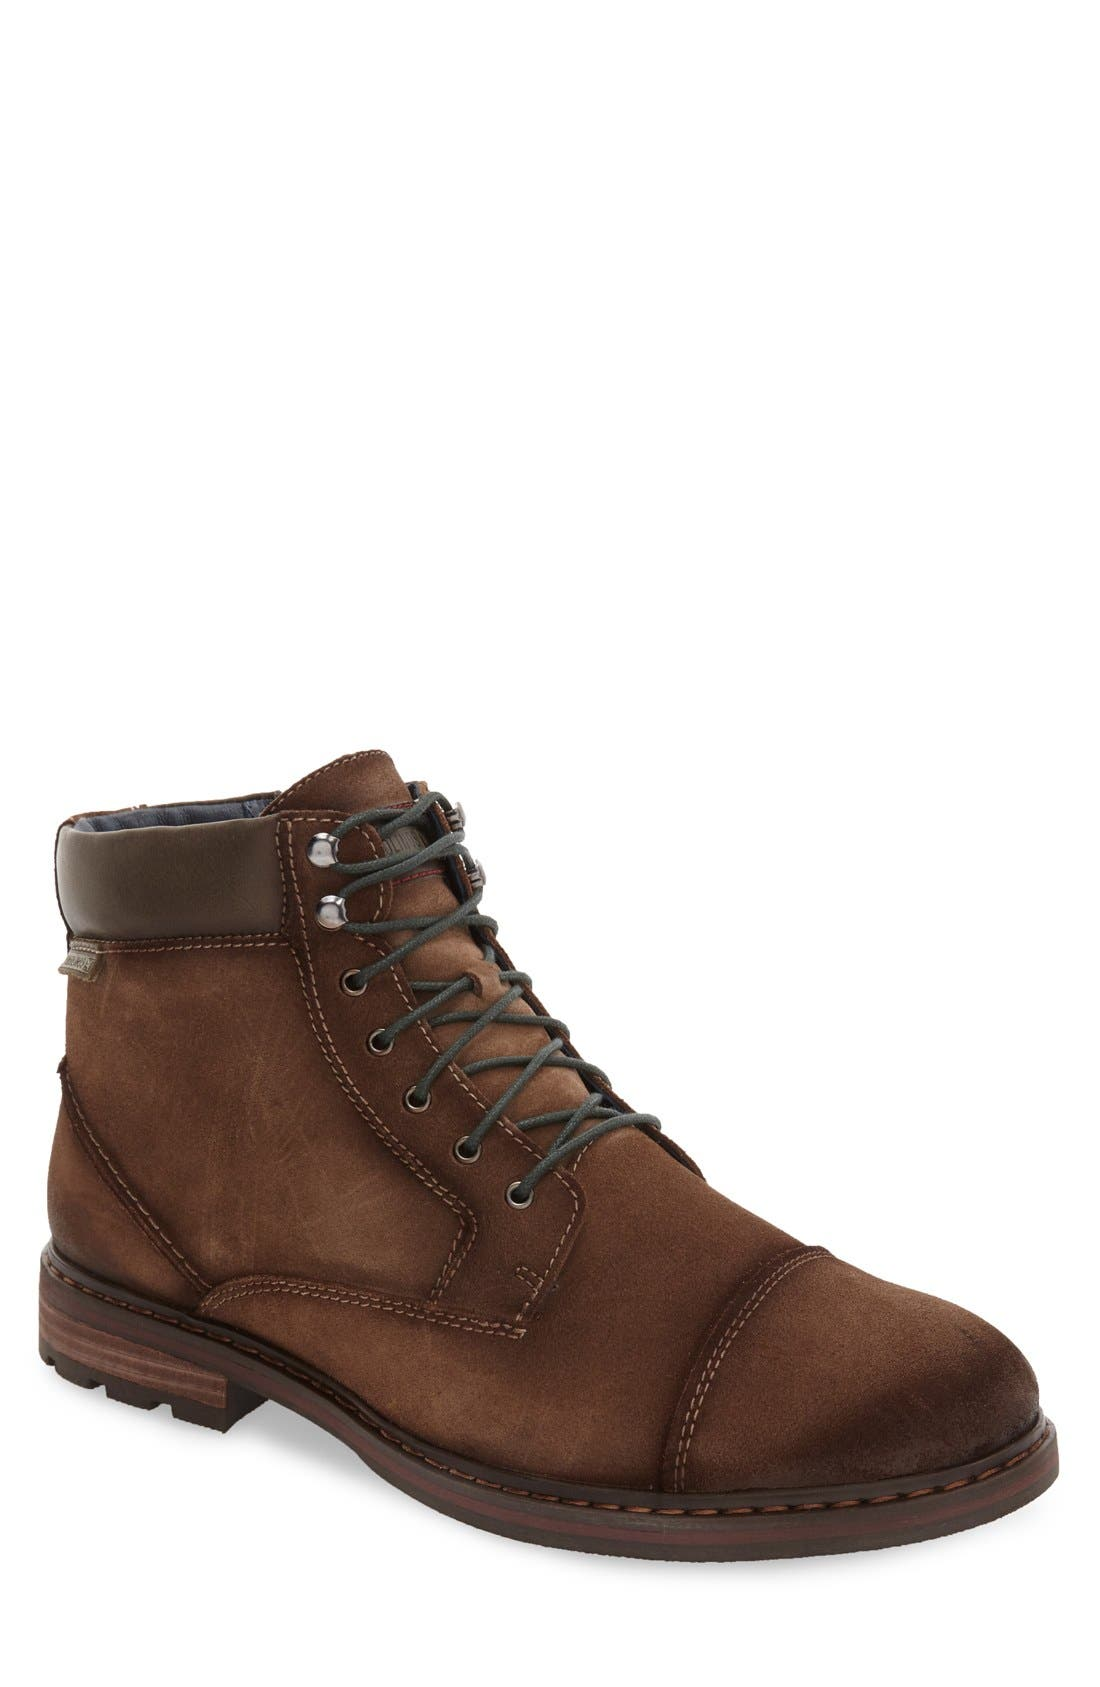 'Cacers' Lace-Up Zip Boot,                         Main,                         color, 200